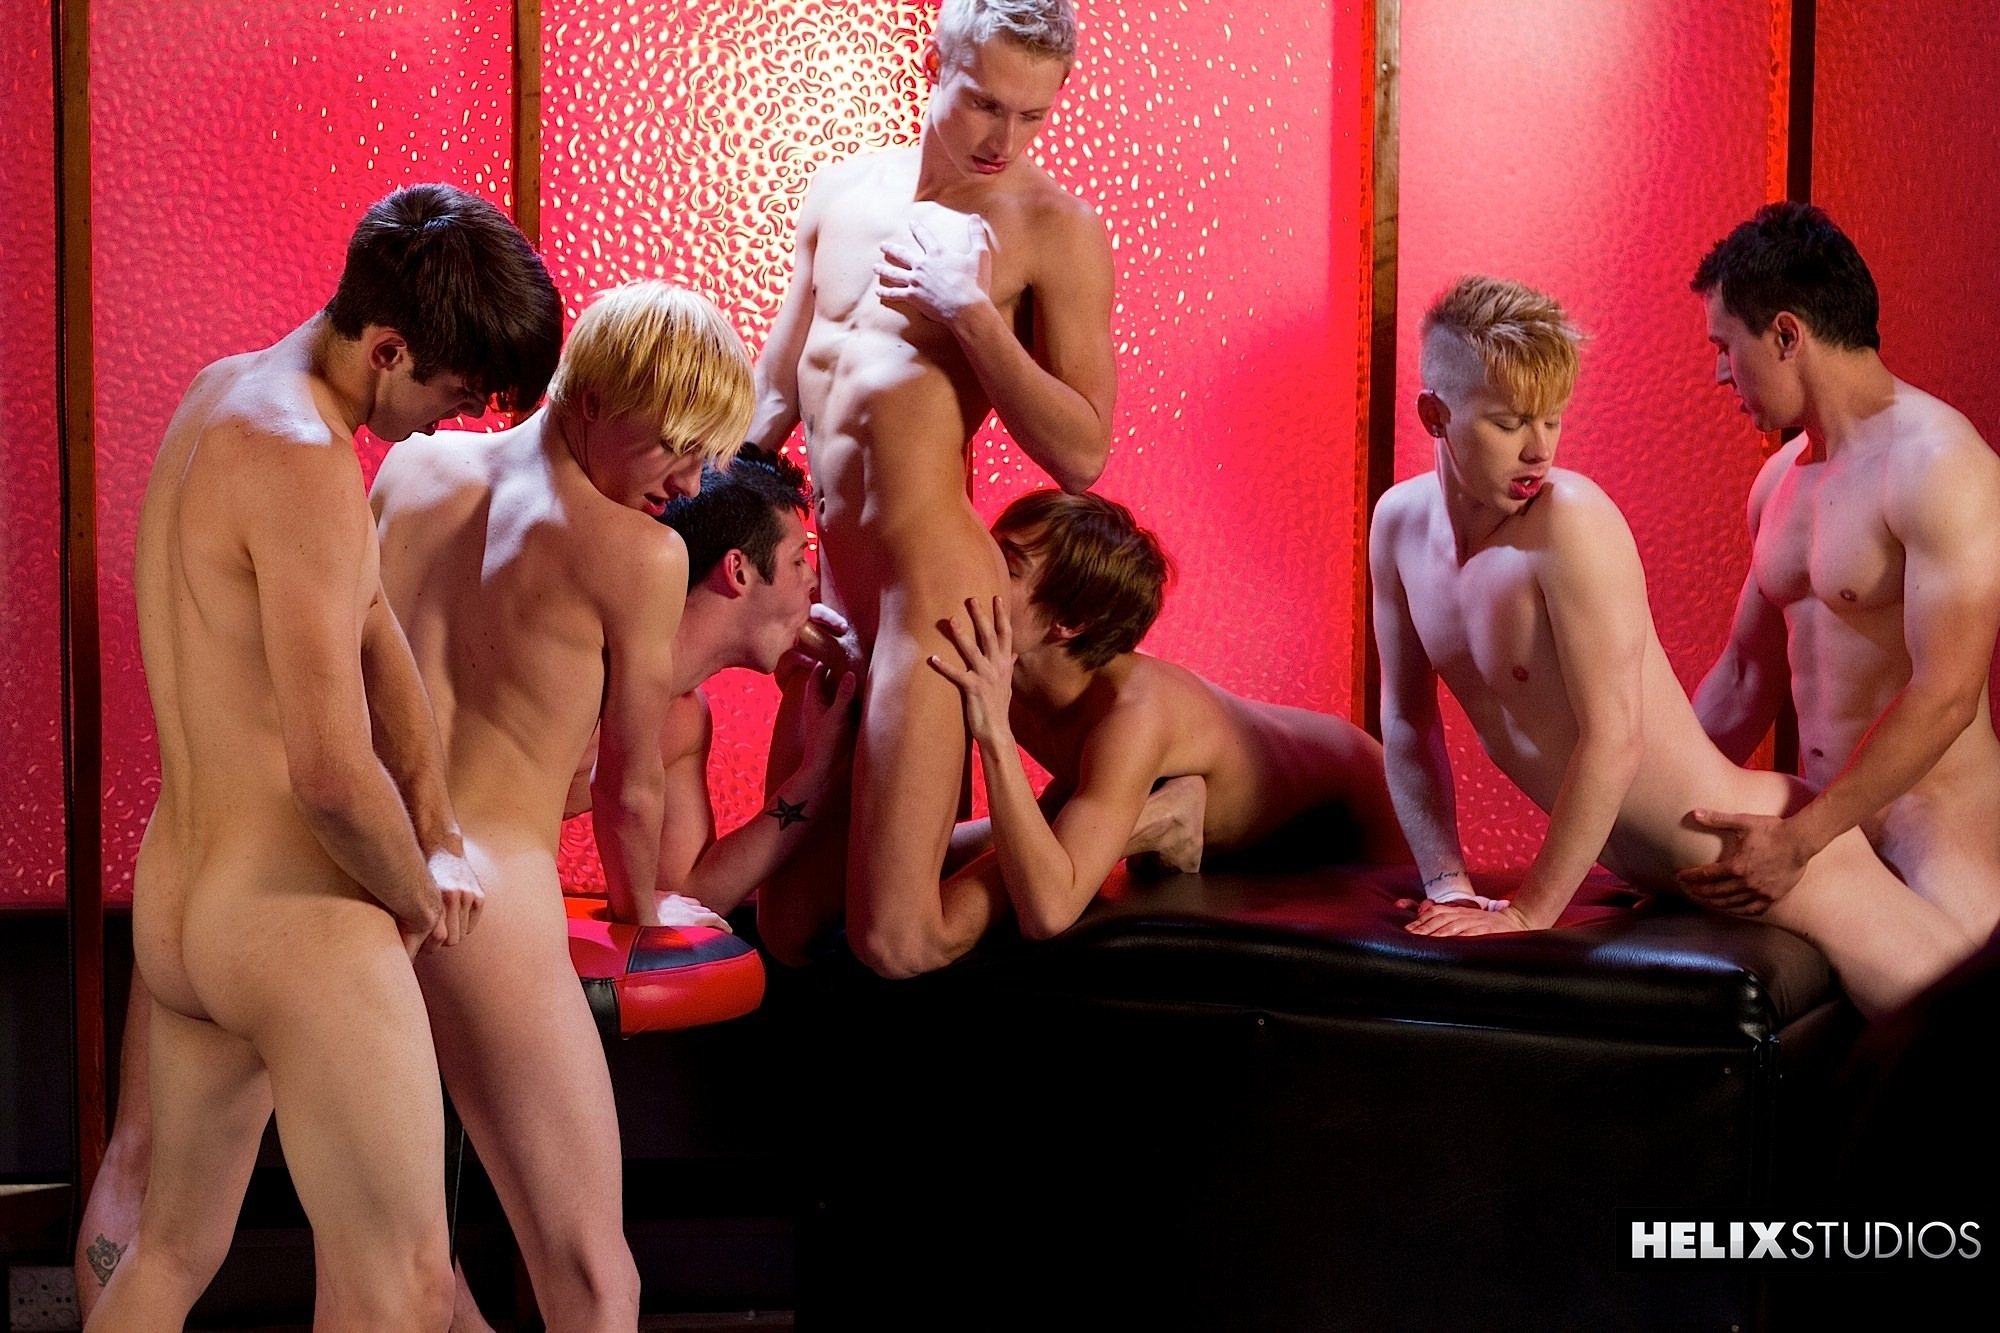 Click Here To Watch Full Scene at Helix Studio ~